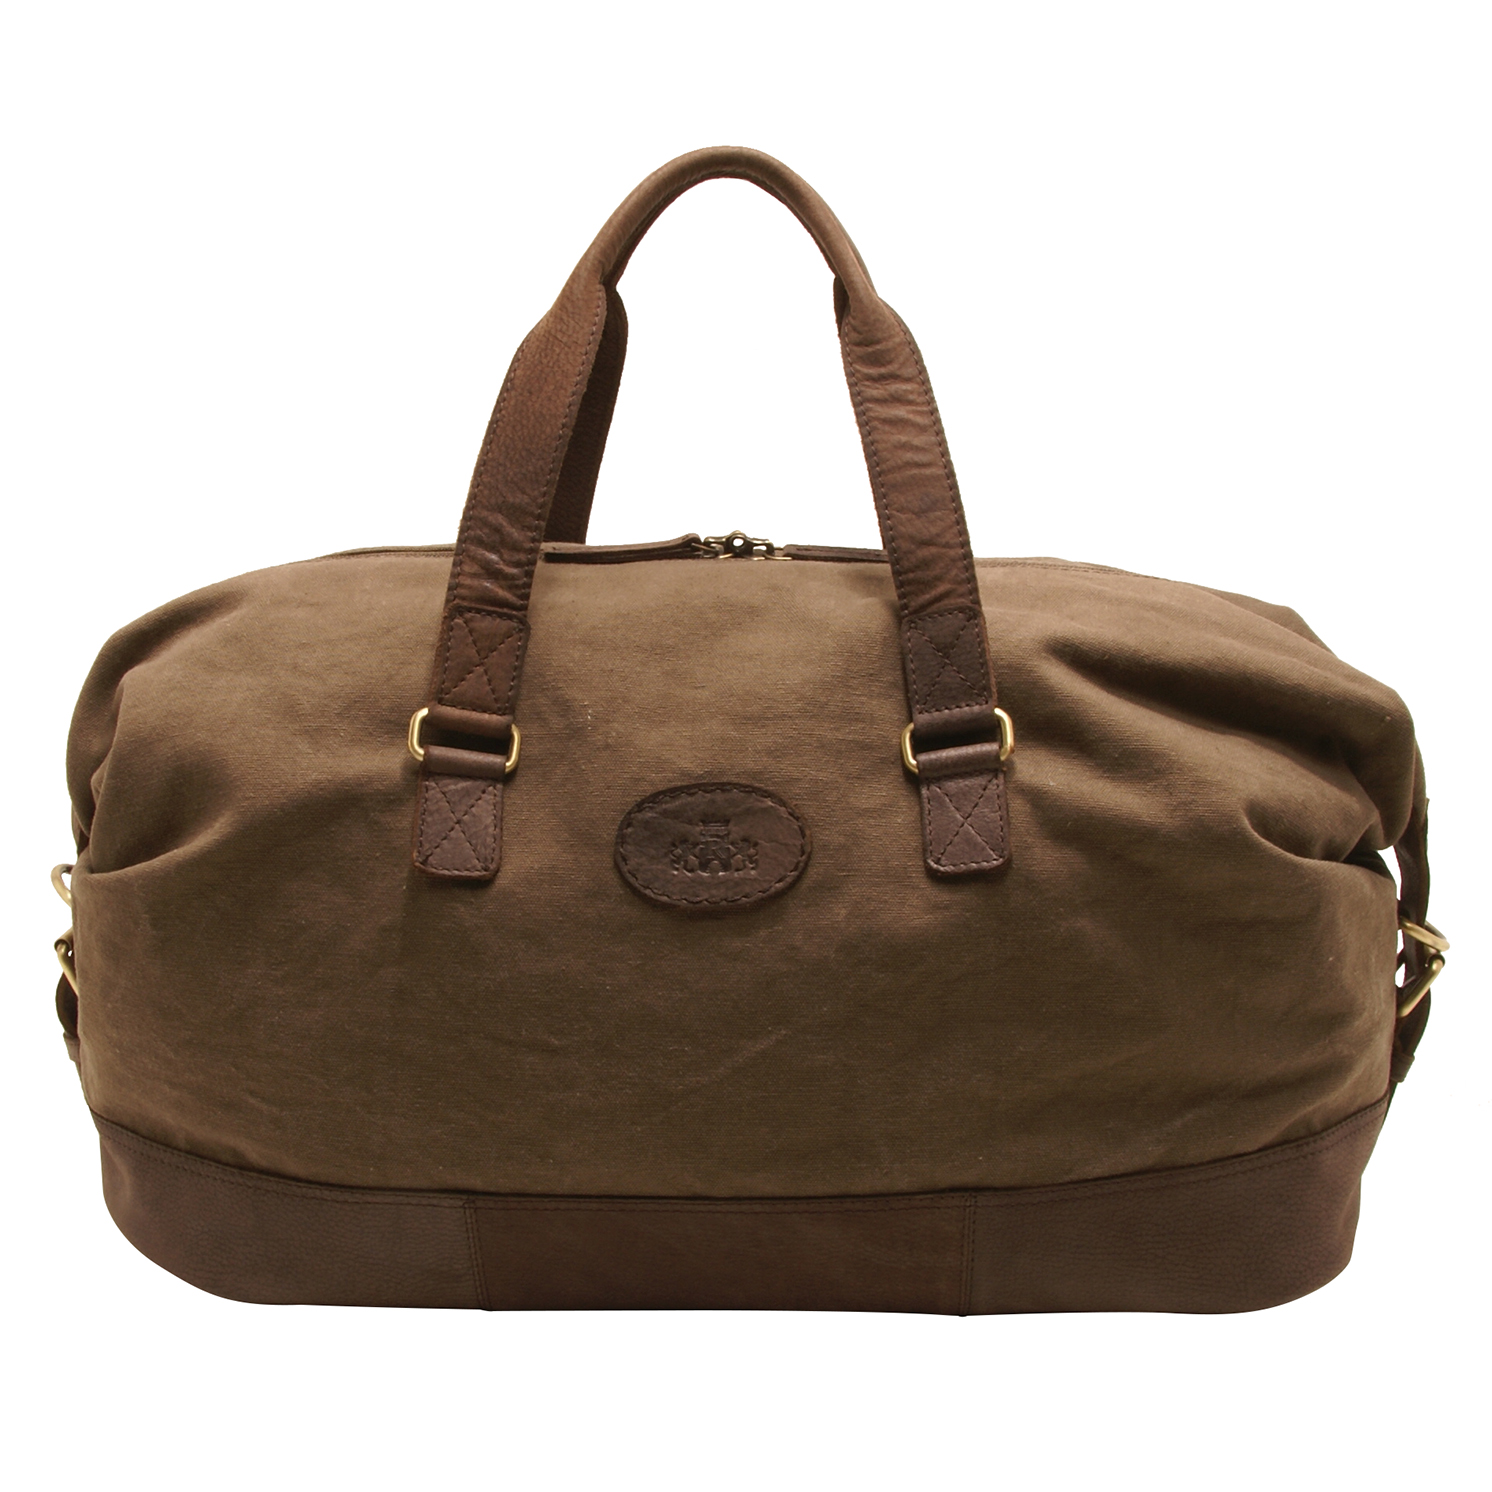 Rowallan – Khaki Canvas Travel Holdall with Leather Trim and Shoulder Strap